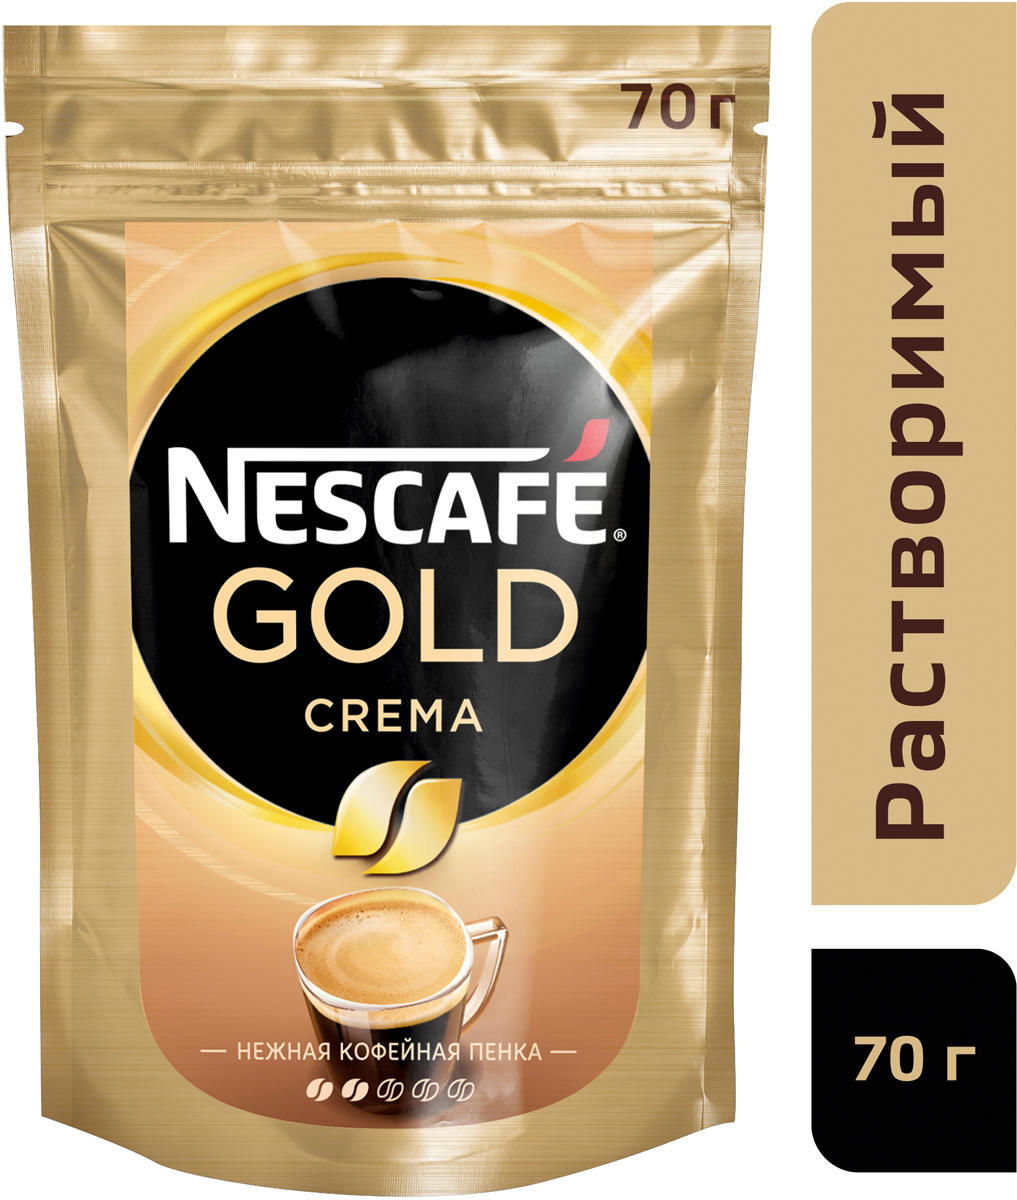 Nescafe Gold Crema кофе растворимый, 70 г